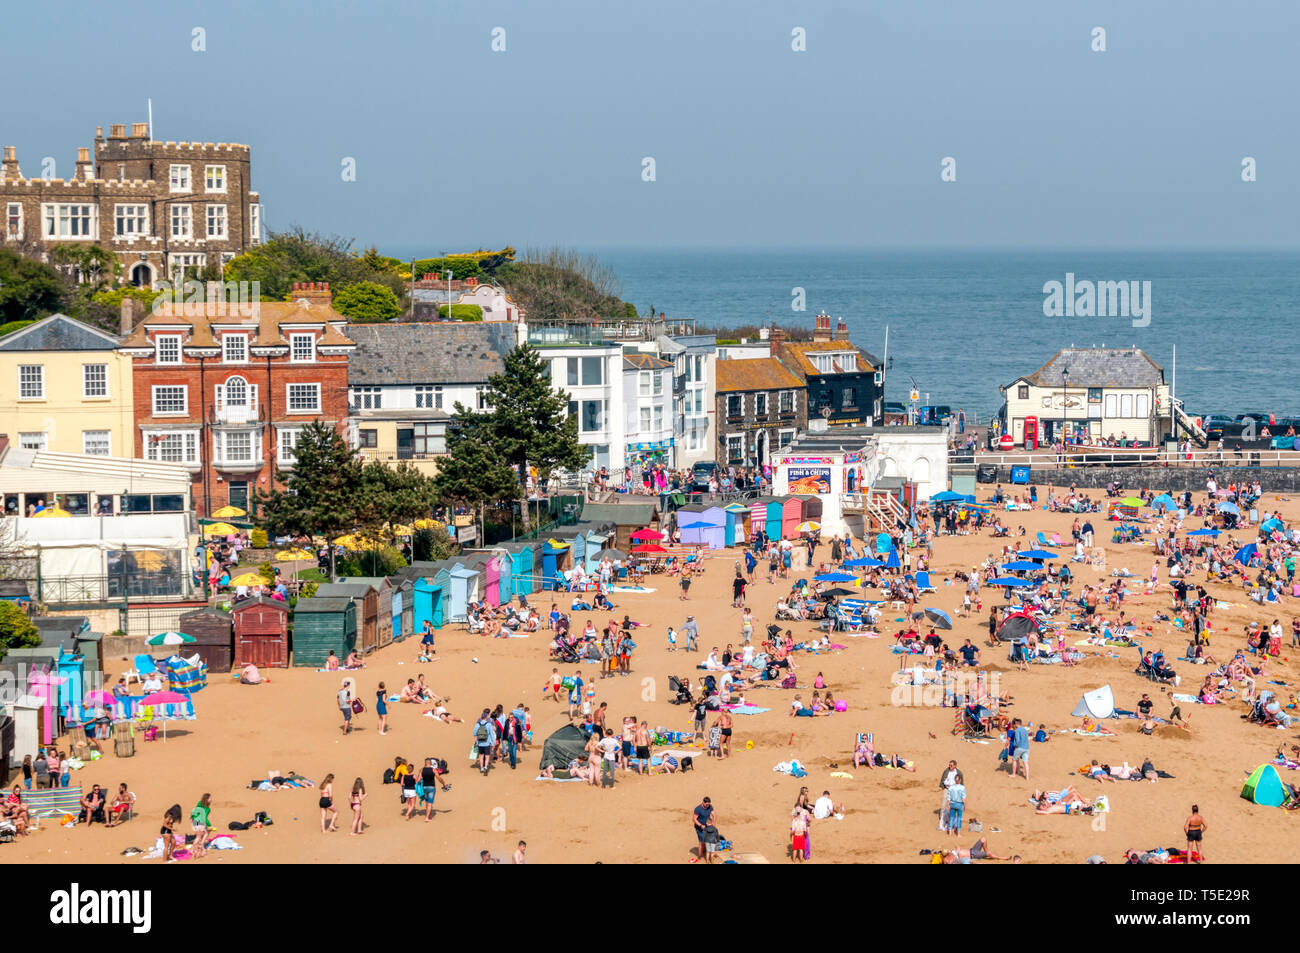 People enjoying the sun on the beach at Viking Bay, Broadstairs, during an unusually warm April 2019 Easter Monday Bank Holiday. Stock Photo